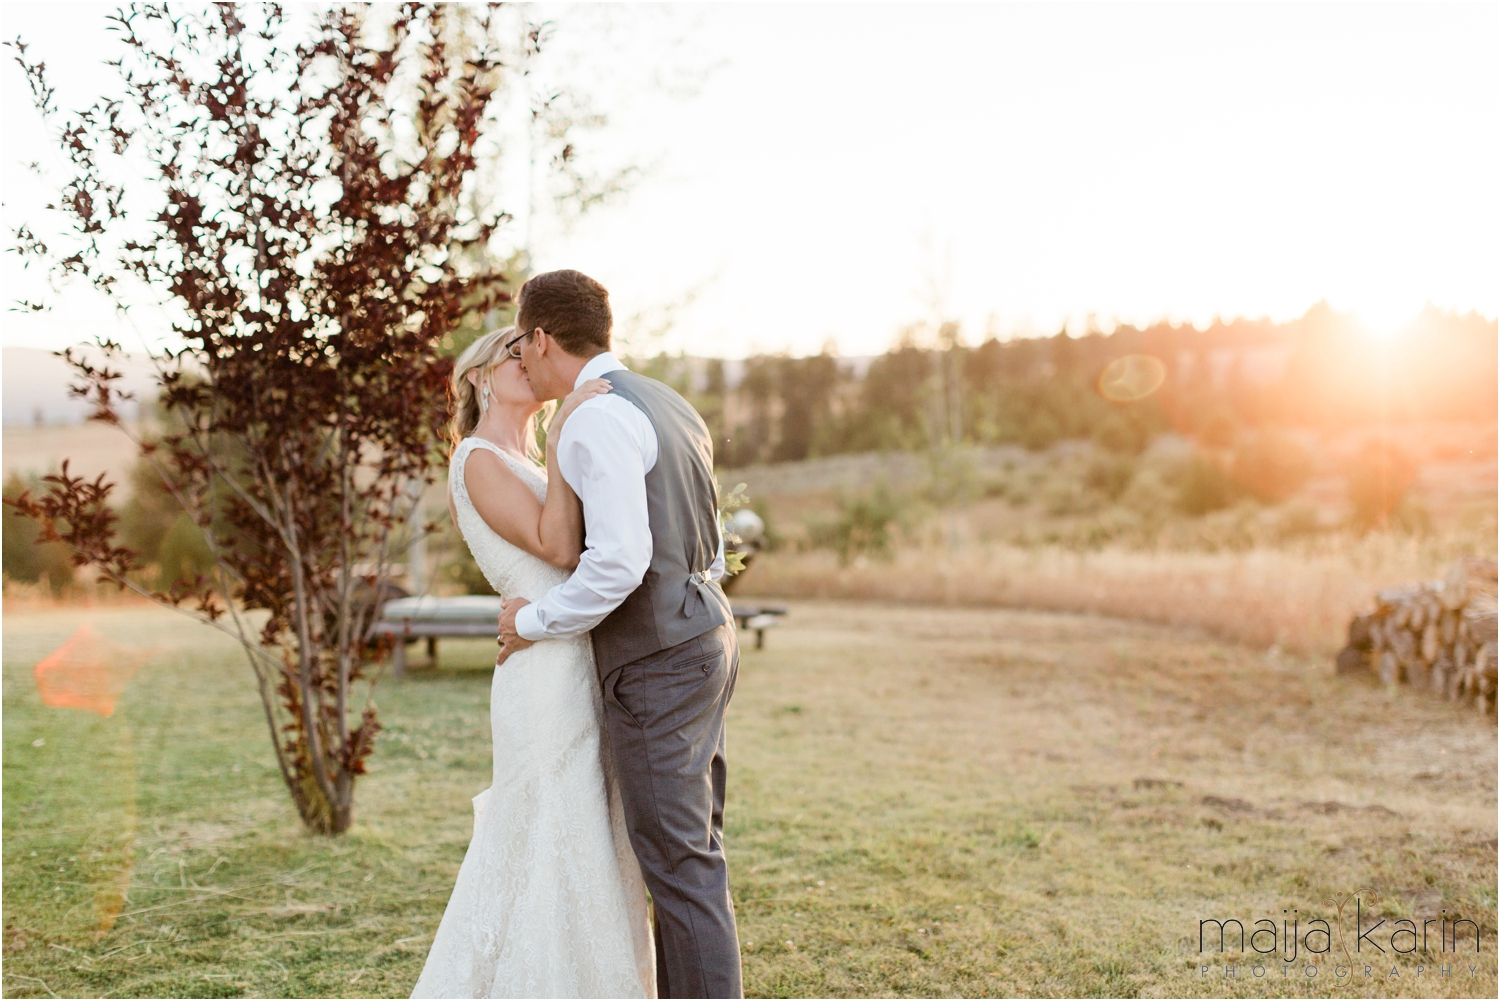 McCall-Idaho-Wedding-Maija-Karin-Photography_0080.jpg